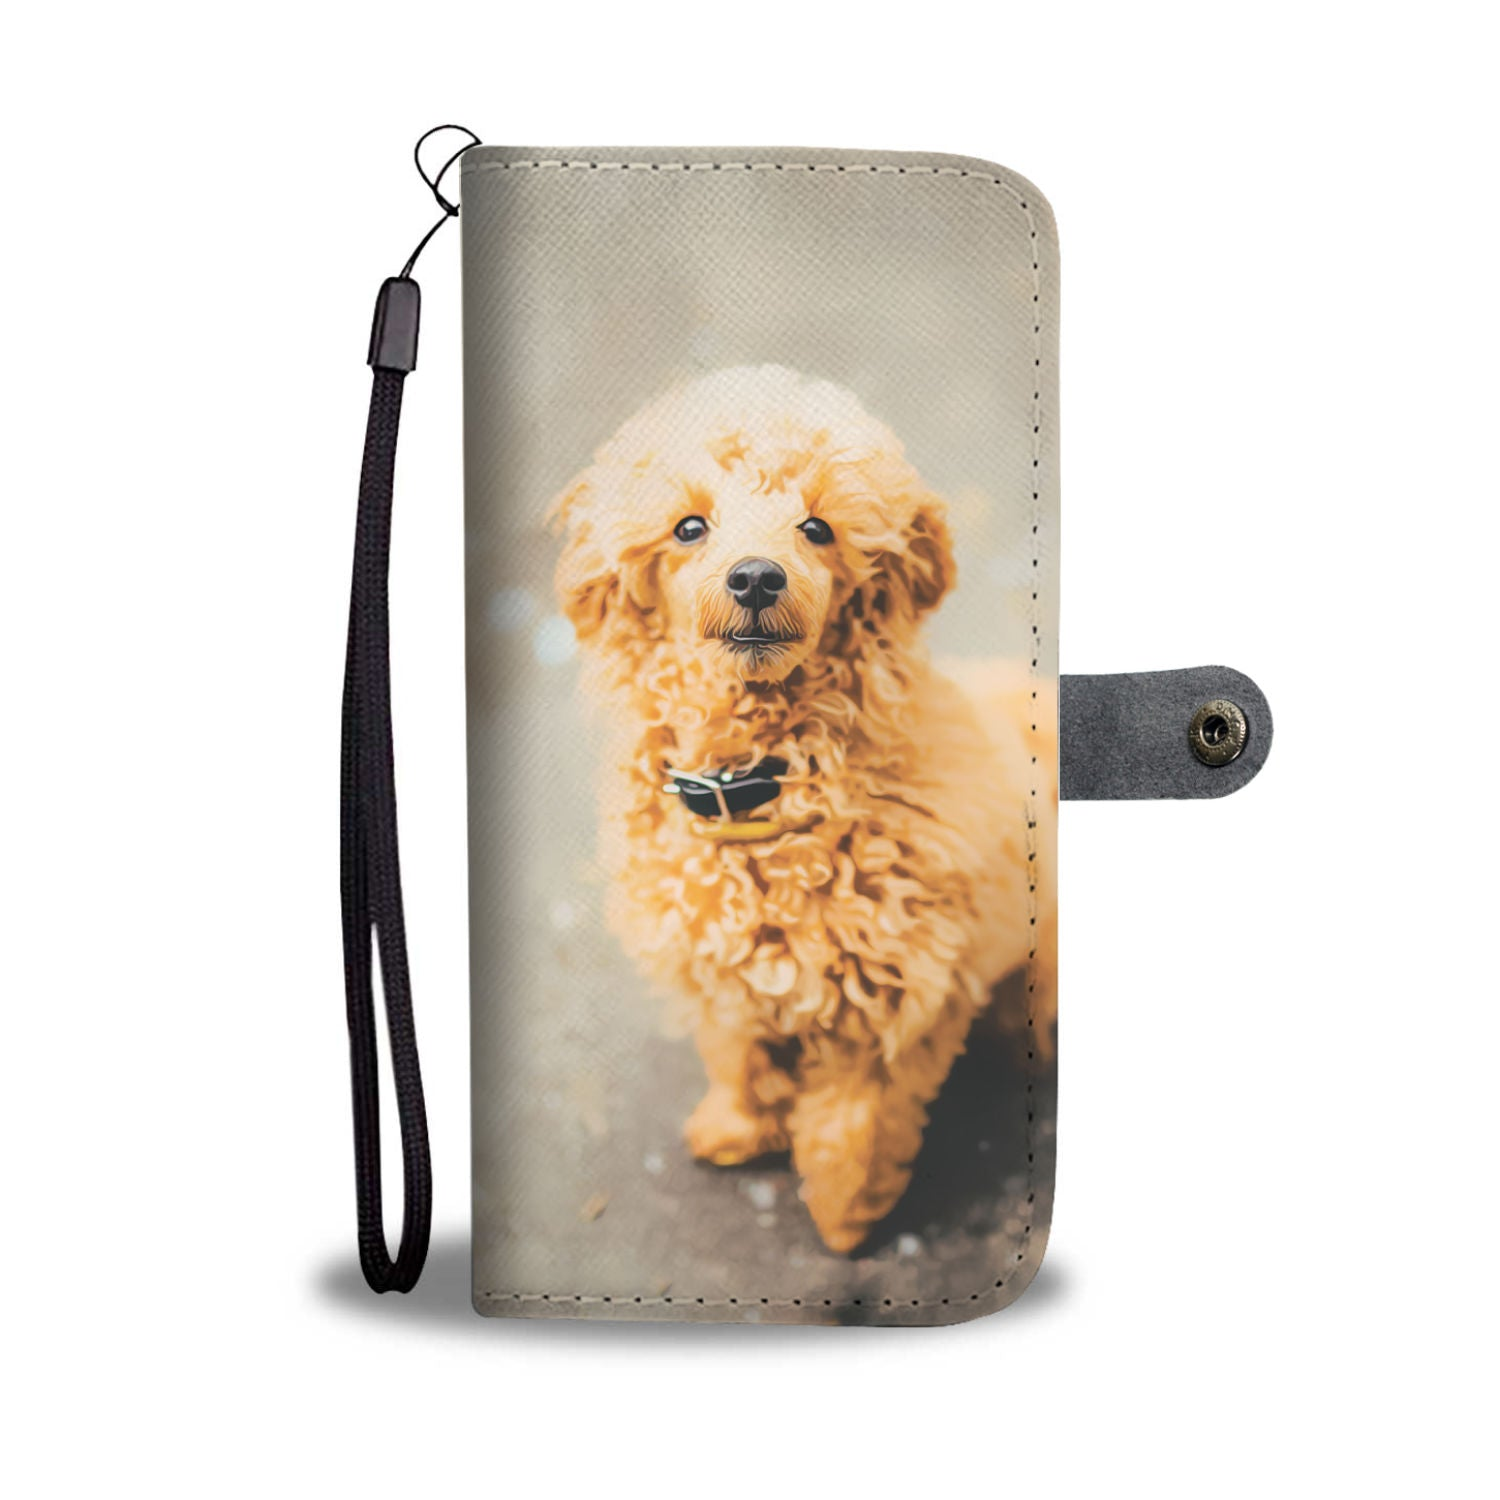 Personalized Poodle Phone Wallet